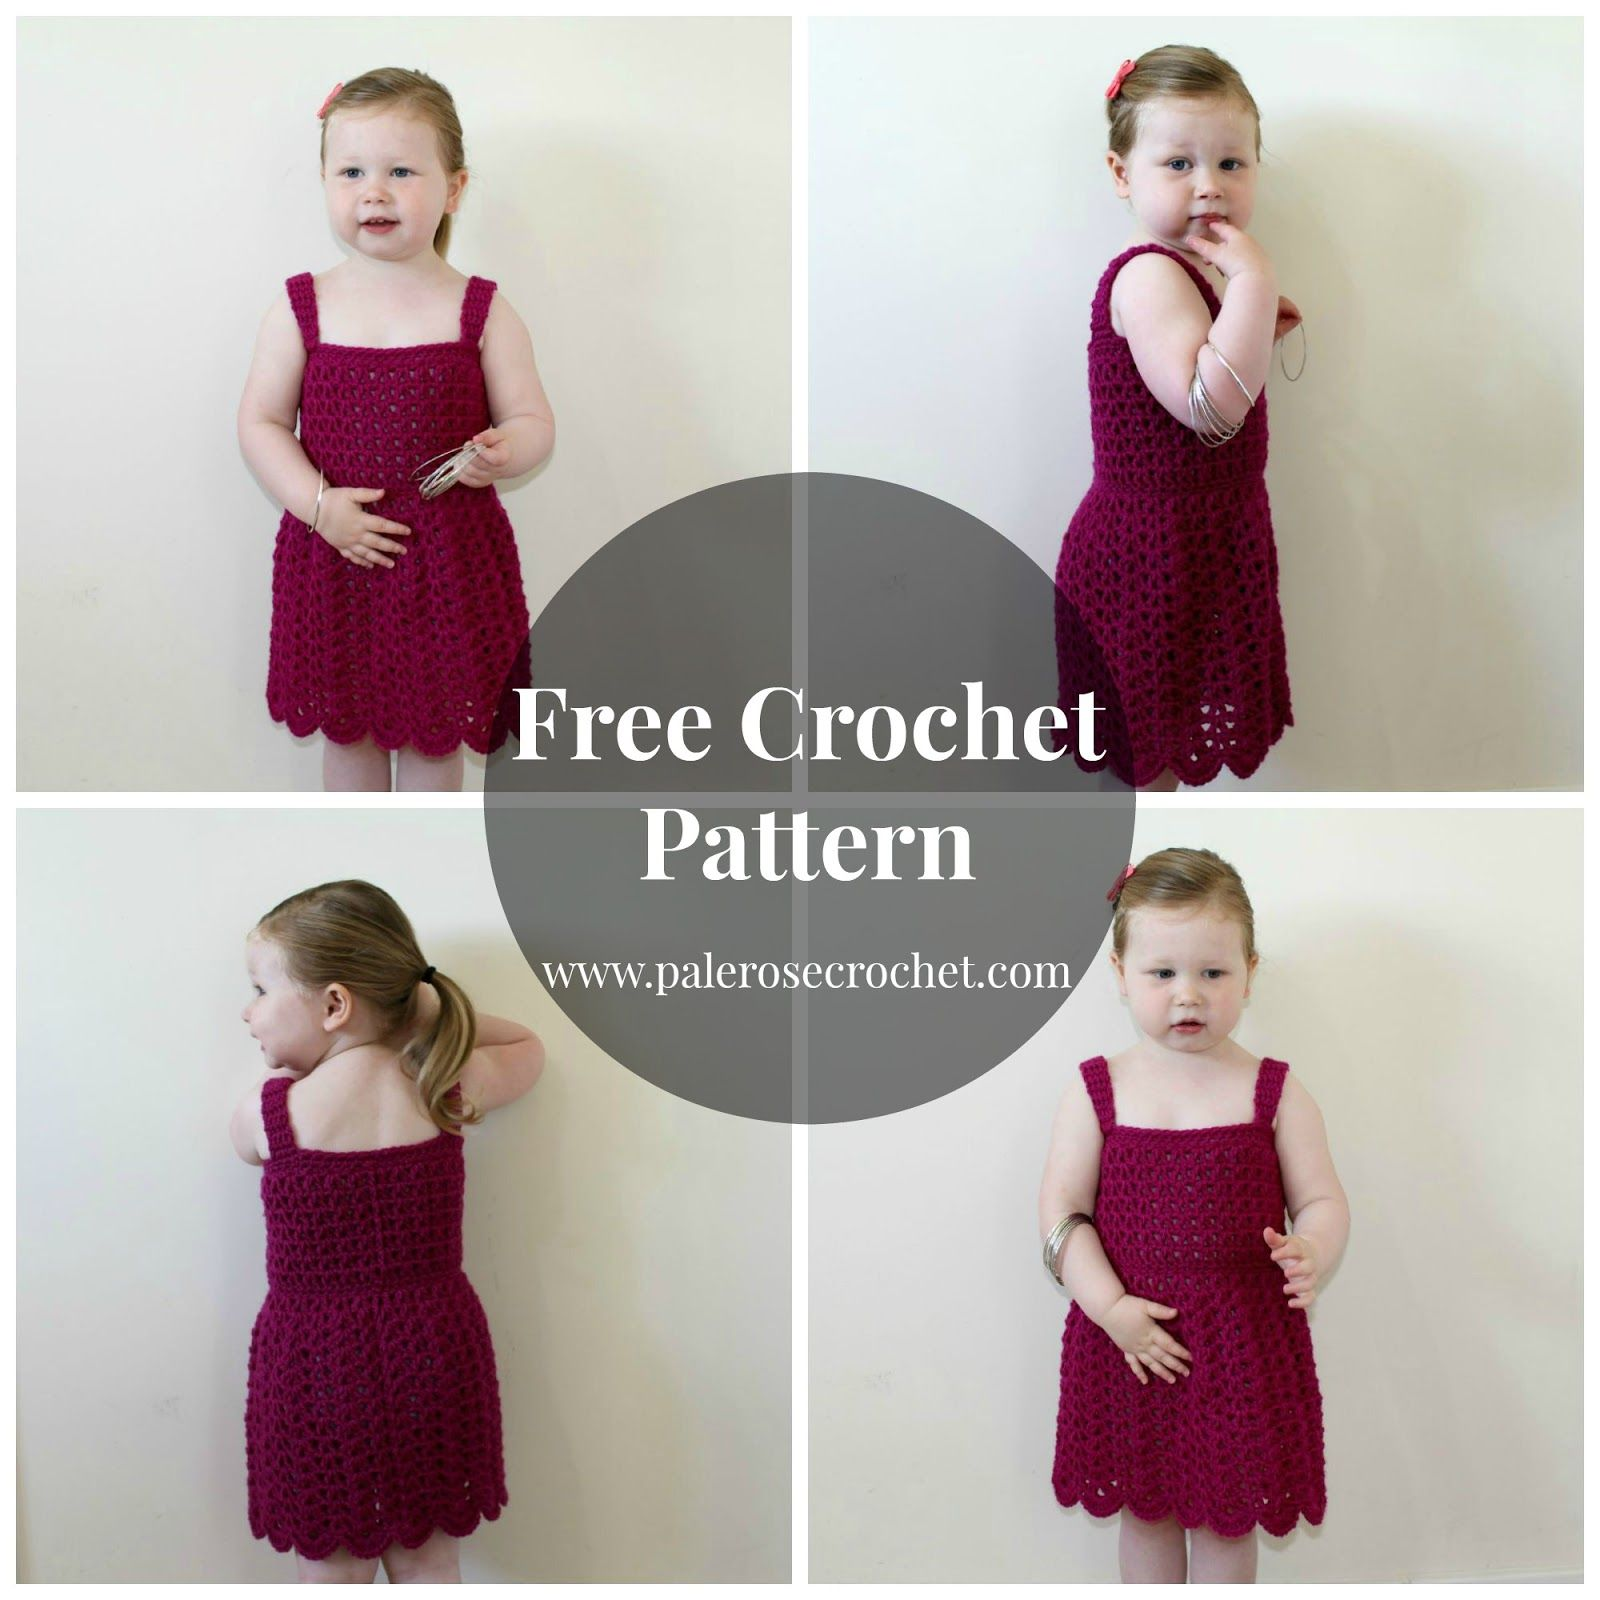 Free Crochet Pattern - Toddler Princess Dress | Crochet LOVE ...